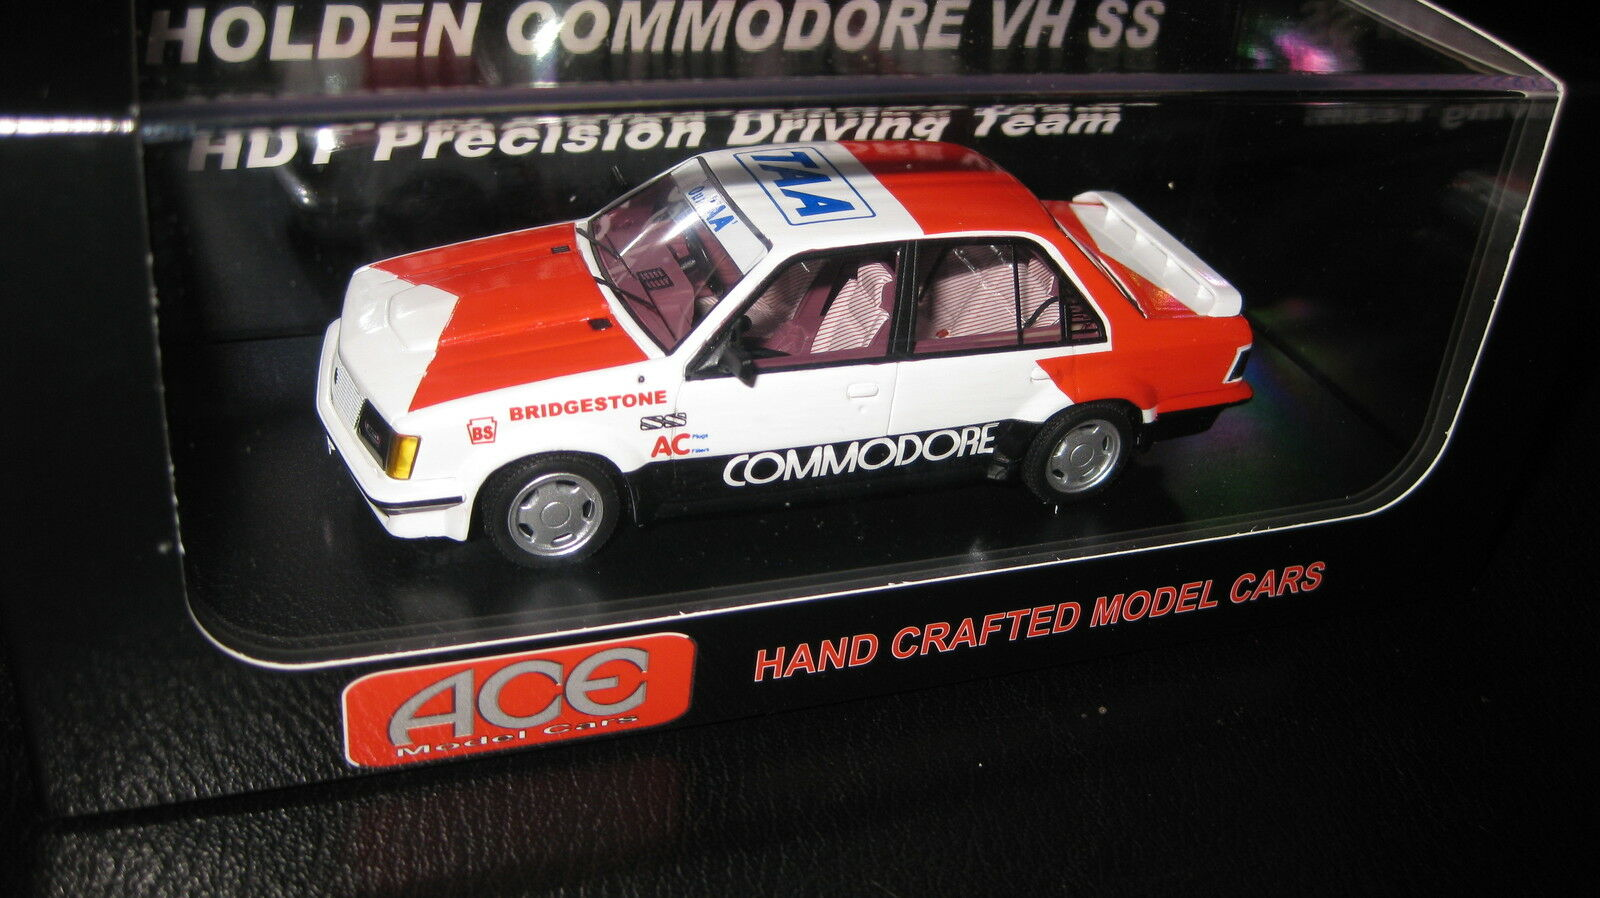 1 43 ACE HOLDEN VH COMMODORE SS HDT PRECISION DRIVING TEAM with Decals supplied